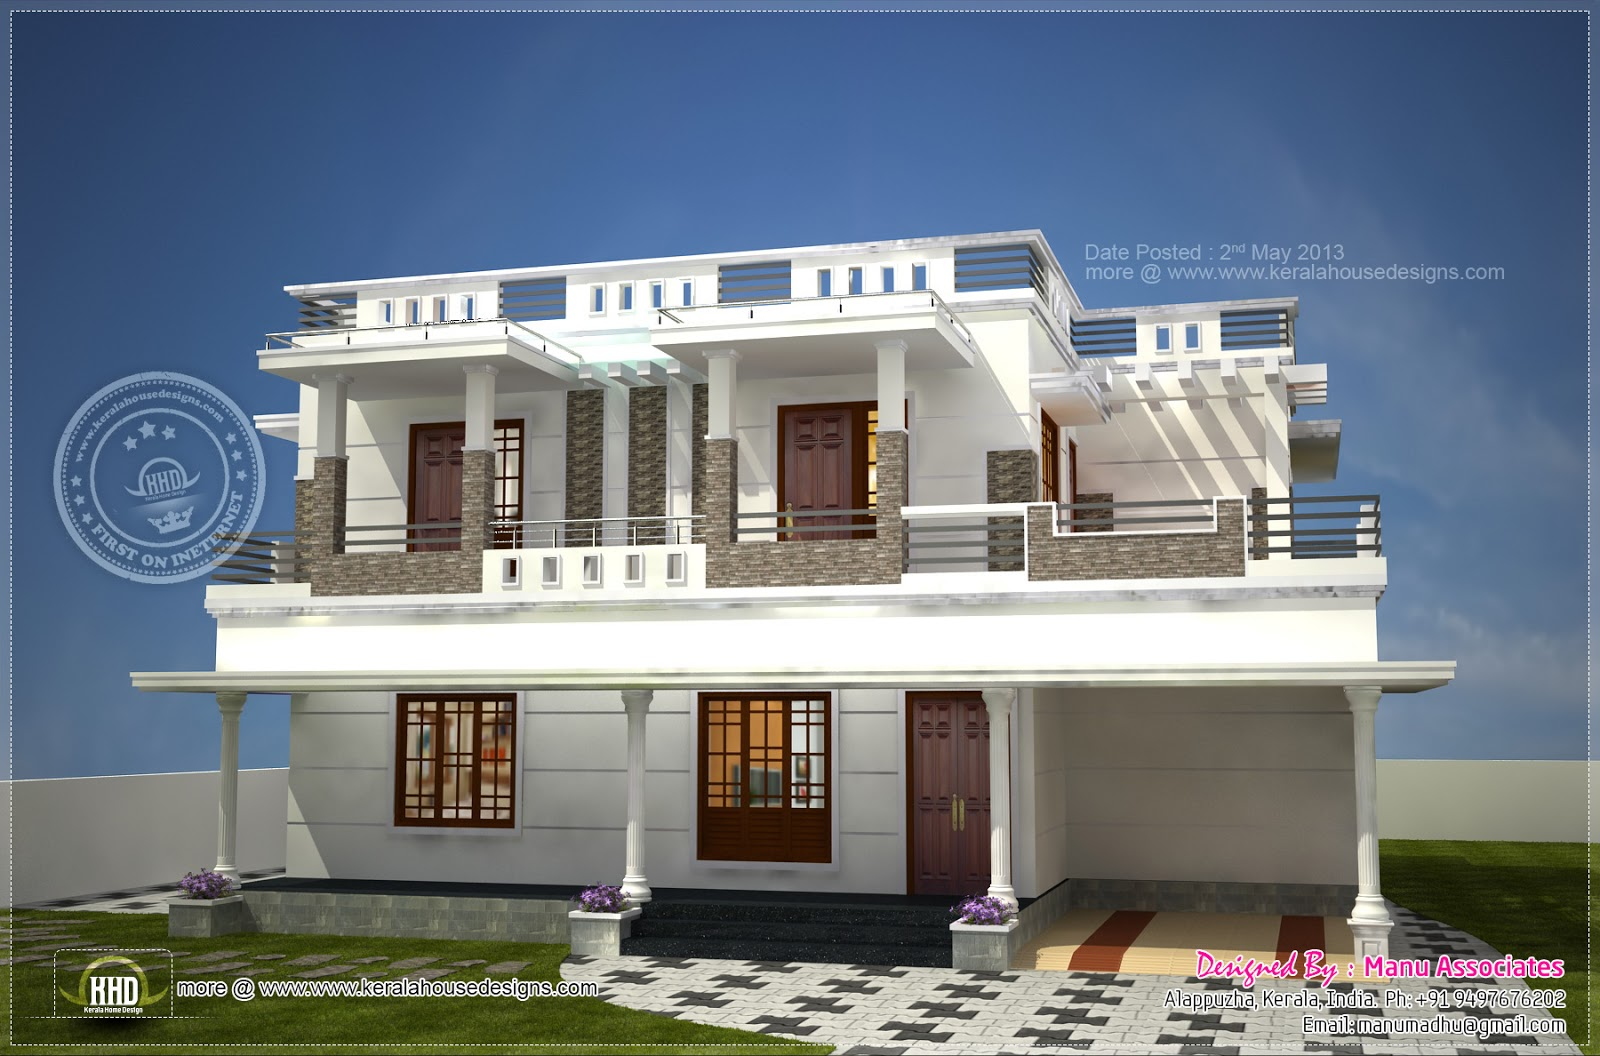 Modern home design in alappuzha kerala house design plans Home design